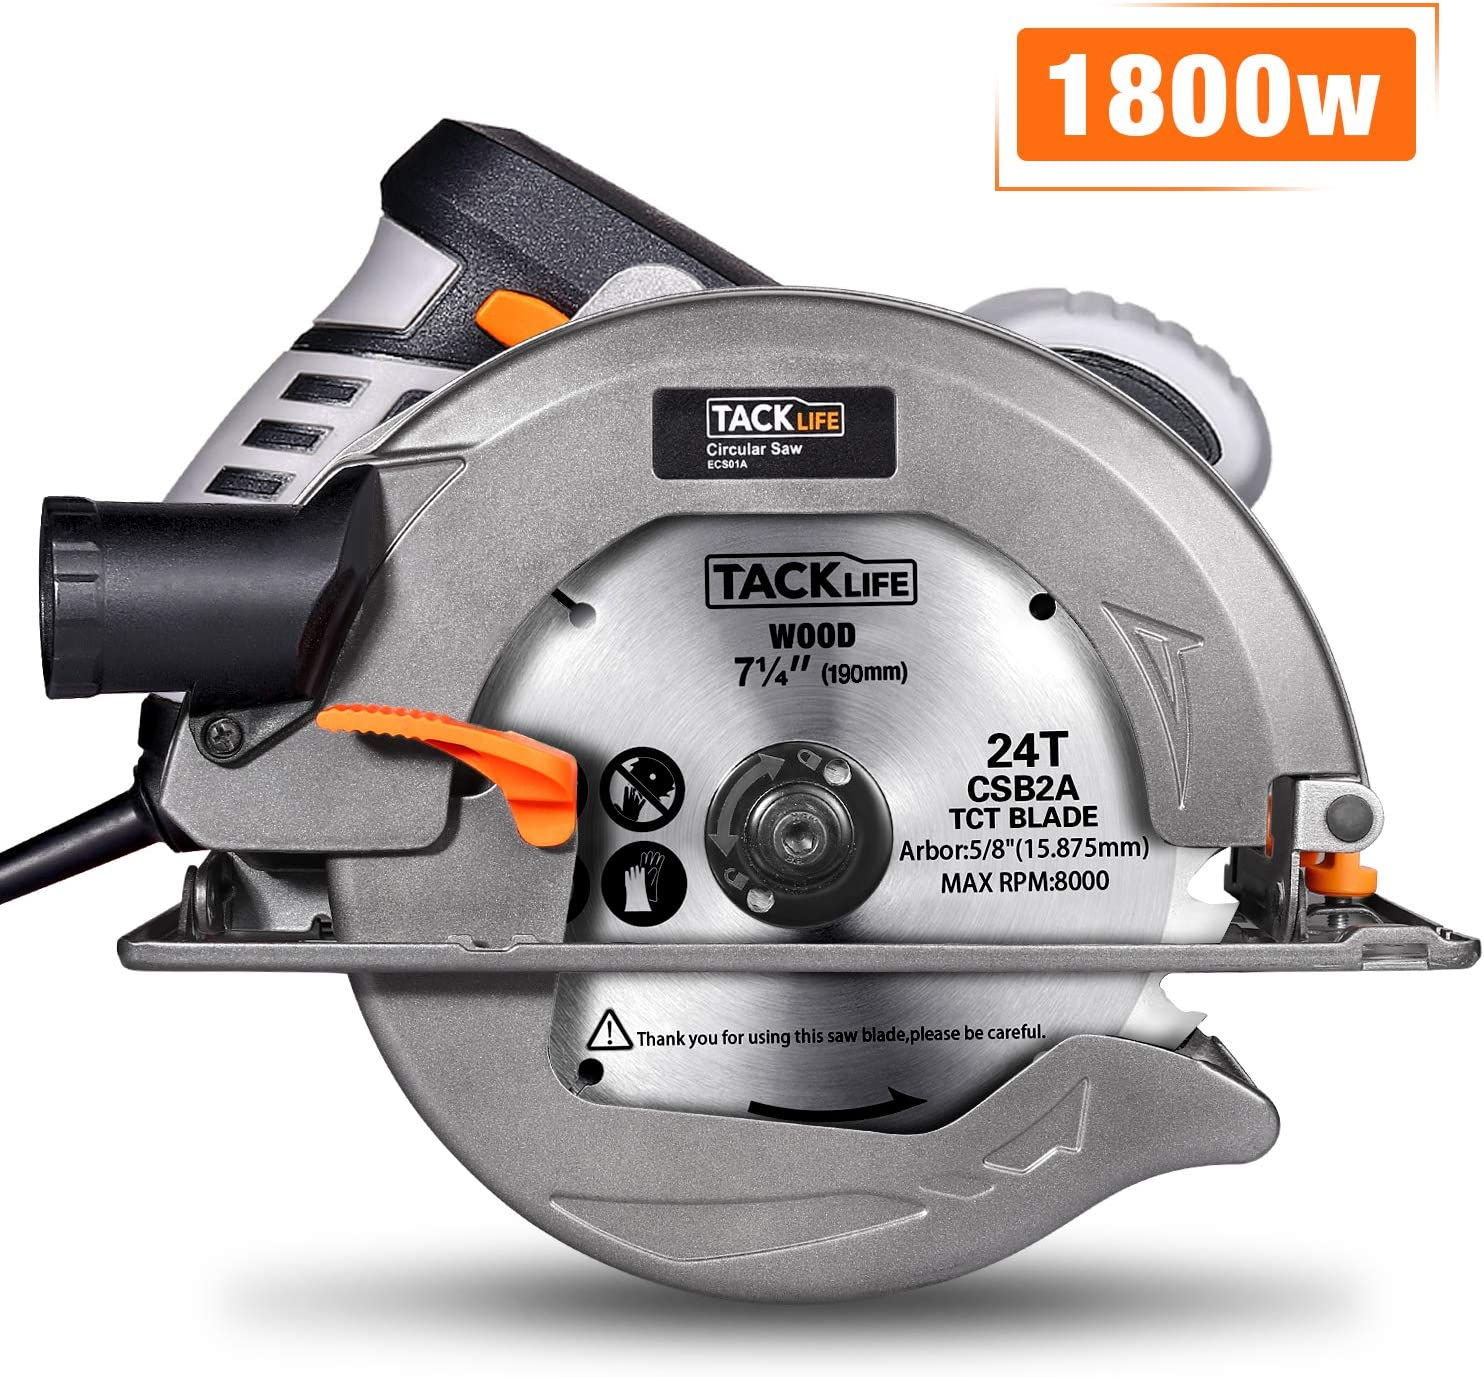 Circular Saw, TACKLIFE Upgraded 1800W 4700RPM Compact Circular Saw with 24T 7-1 2-inch 190mm Carbide Tipped Blade, Aluminum Protective Guard